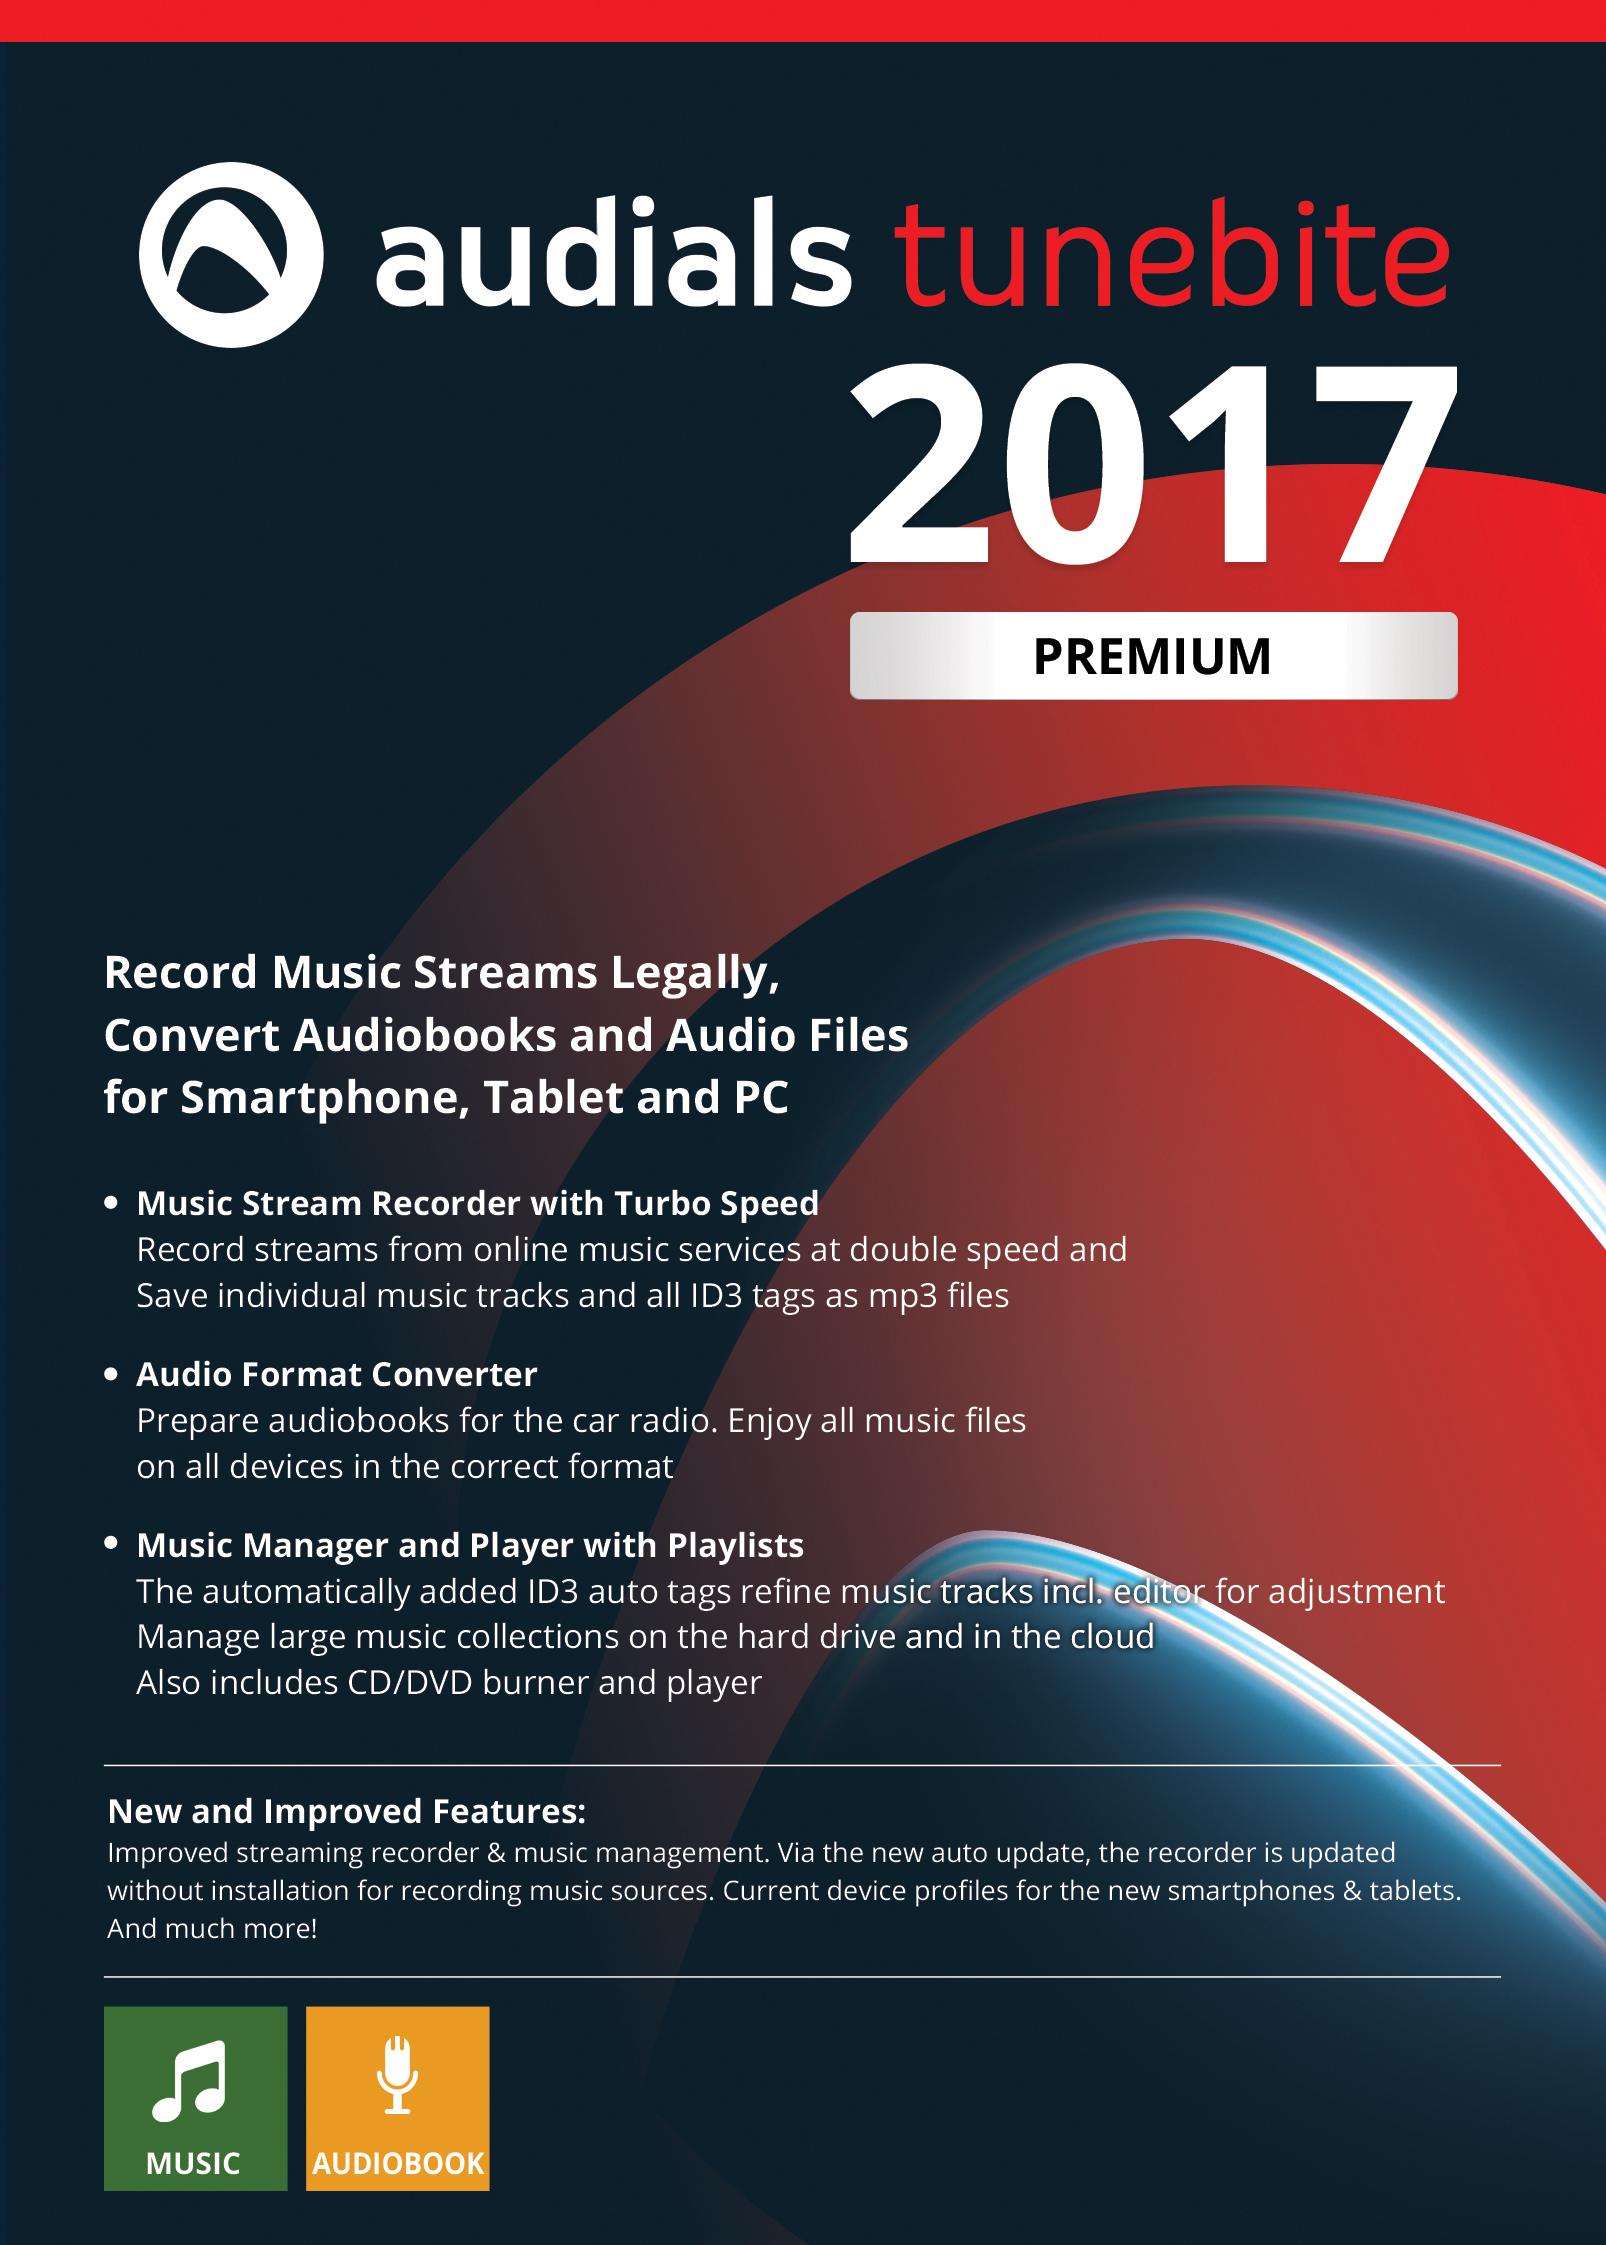 Audials Tunebite 2017 Premium   Save Music From Paid Services And Websites Easily  Download